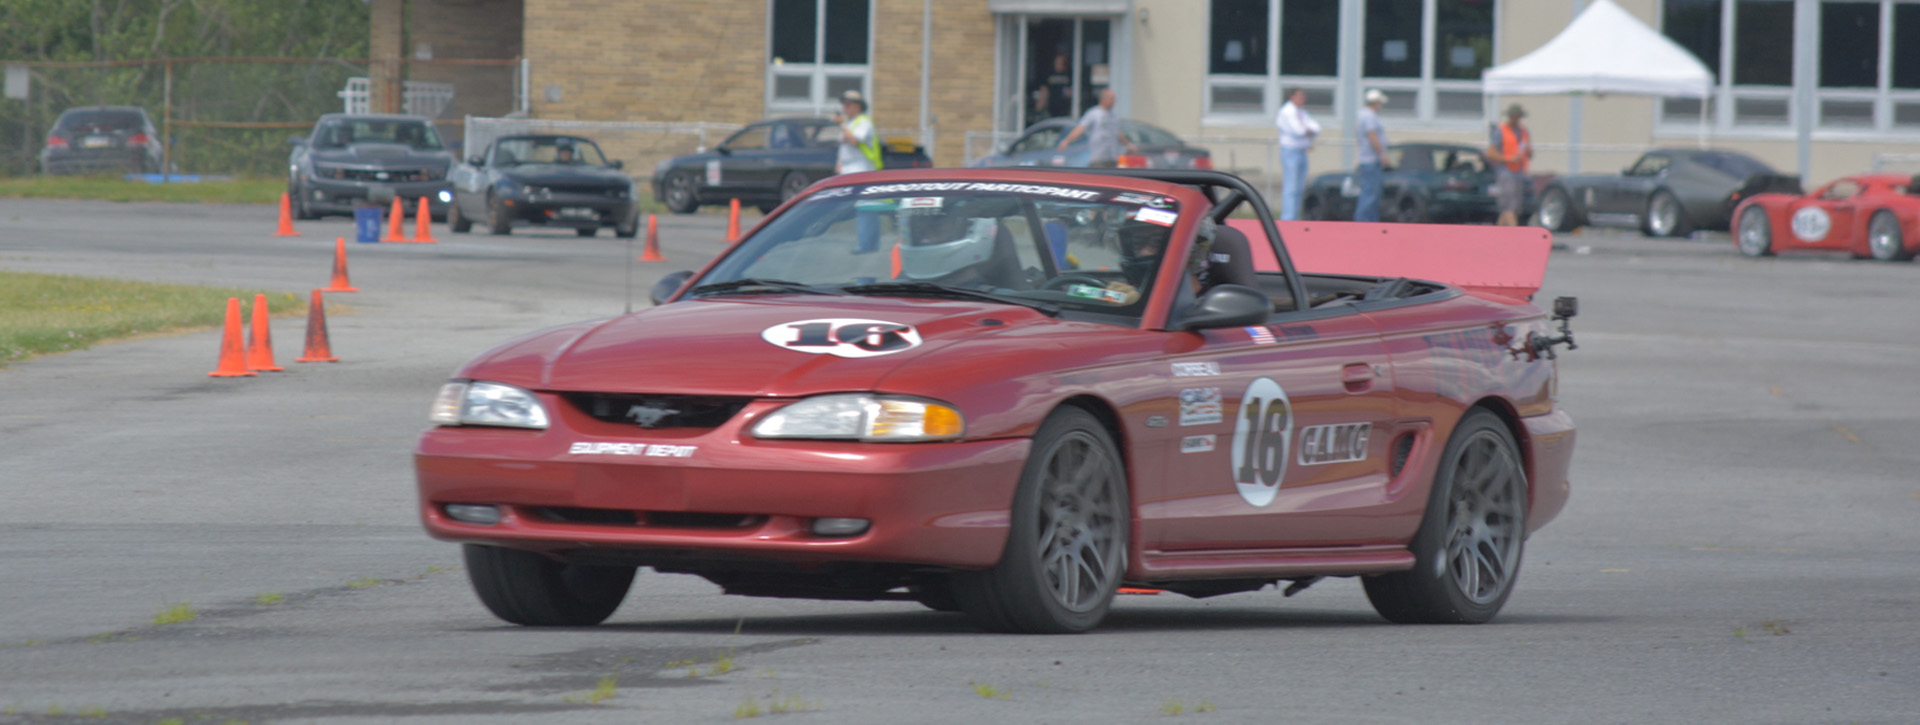 <p>Name: Christopher Brown From: York Haven, PA Runs: SCCA AutoCross Drives: 1997 Ford Mustang GT in CAM-C class MemberSince: 2016 If you ran with us in 2017 you are sure to have seen Chris around the events. When we asked him to talk about this AX experiences he had the [&hellip;]</p>